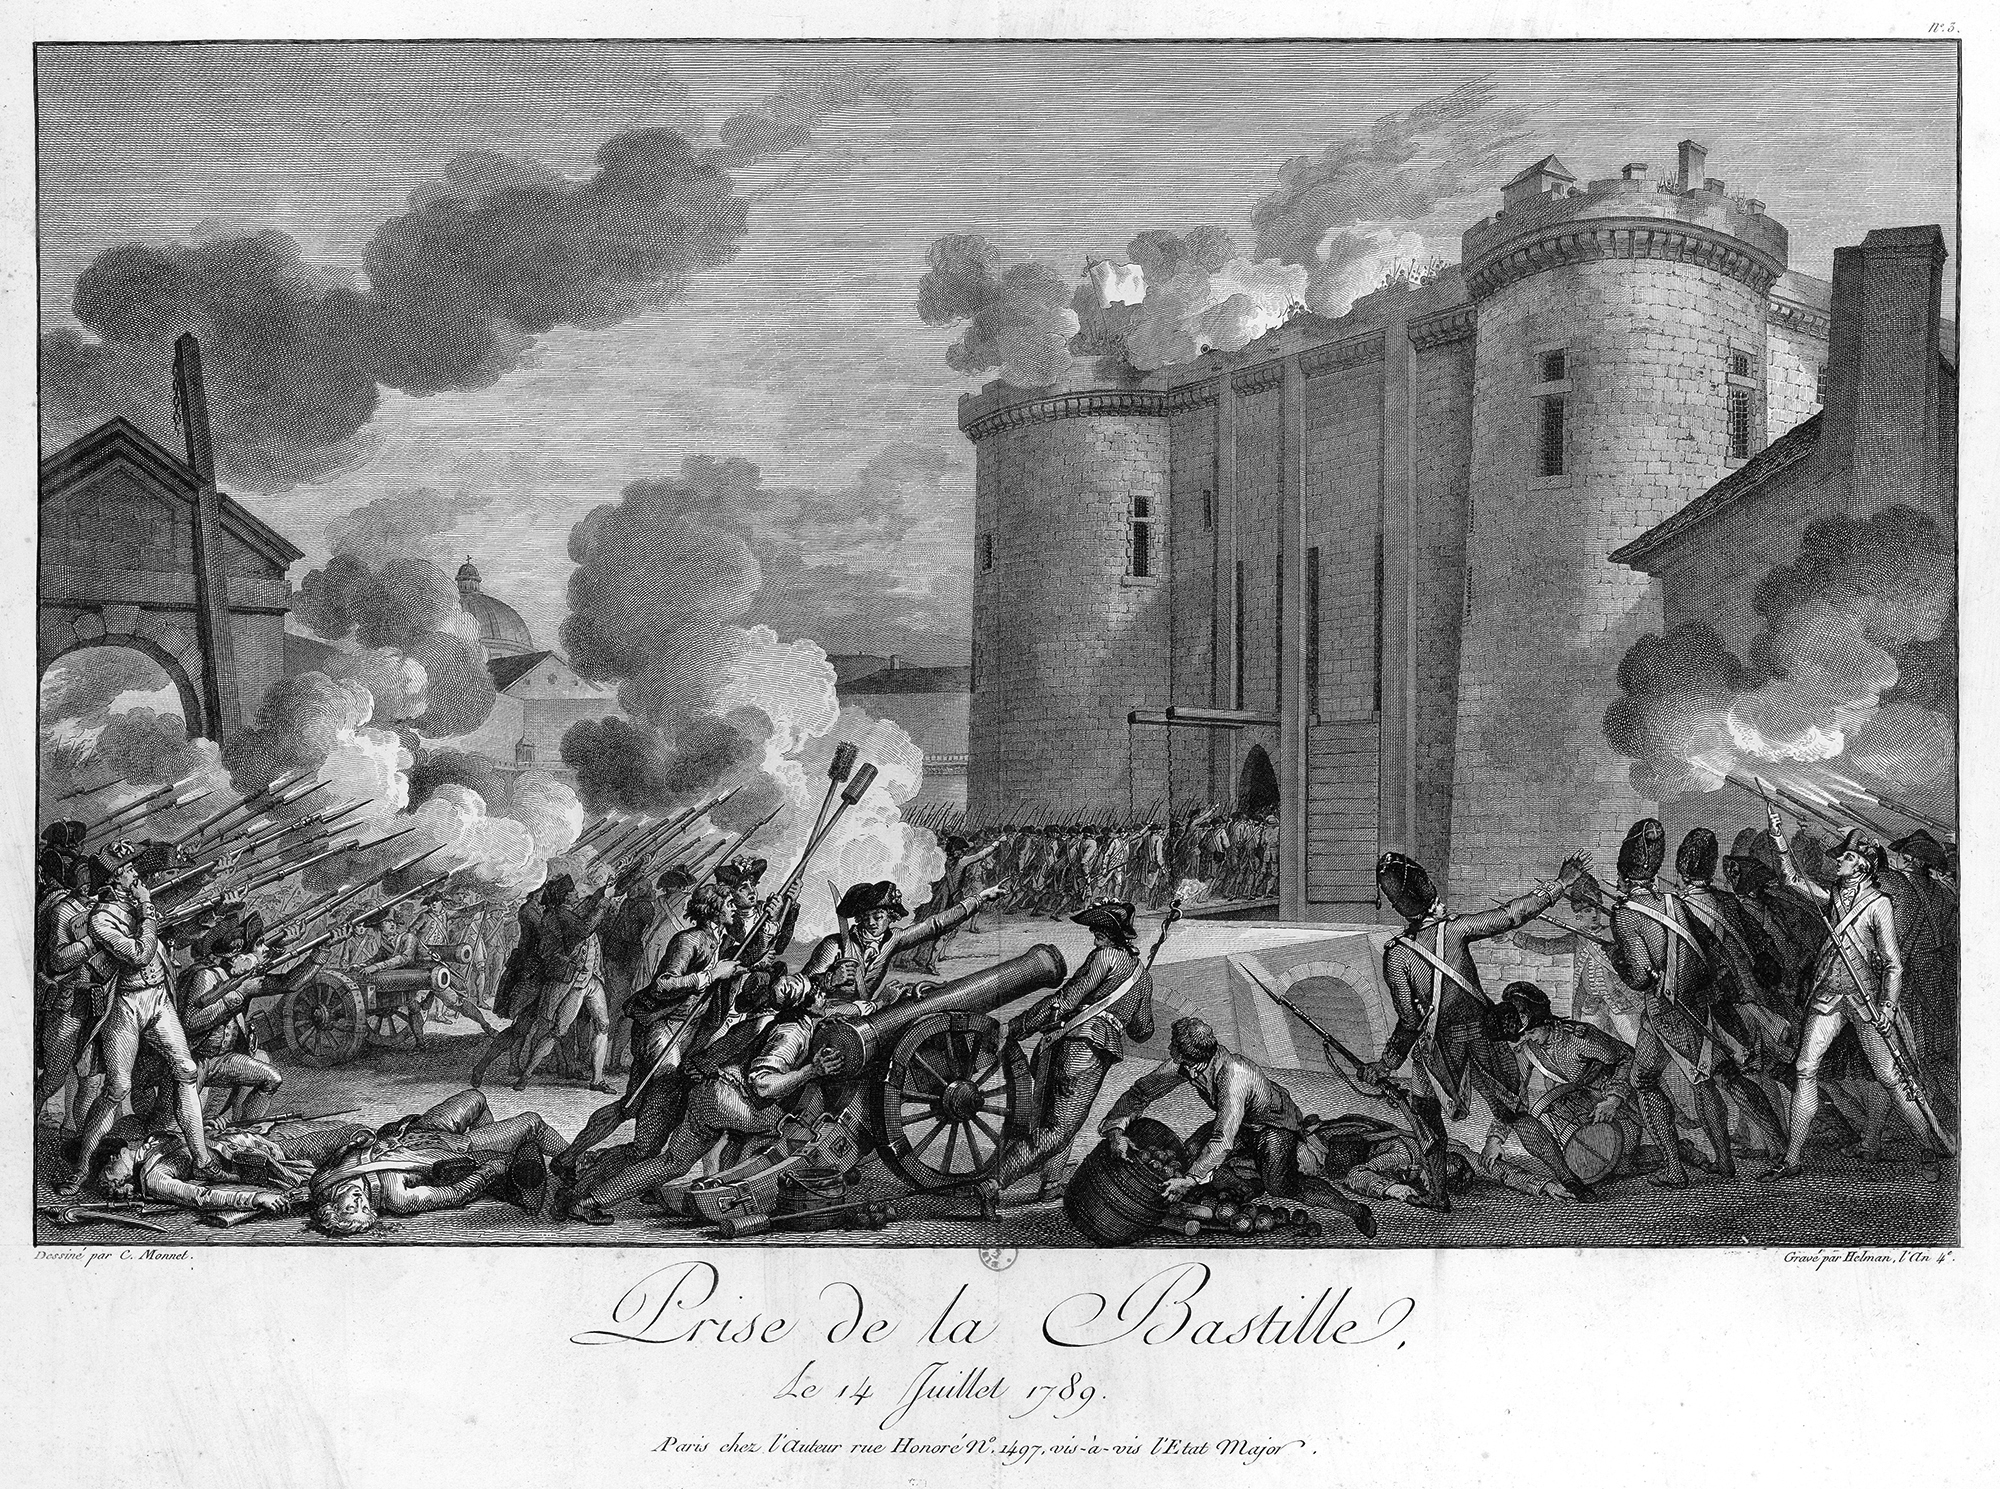 sample transnational westview press photo 1 1 the storming of the bastille 1789 source bibliothegraveque nationale de